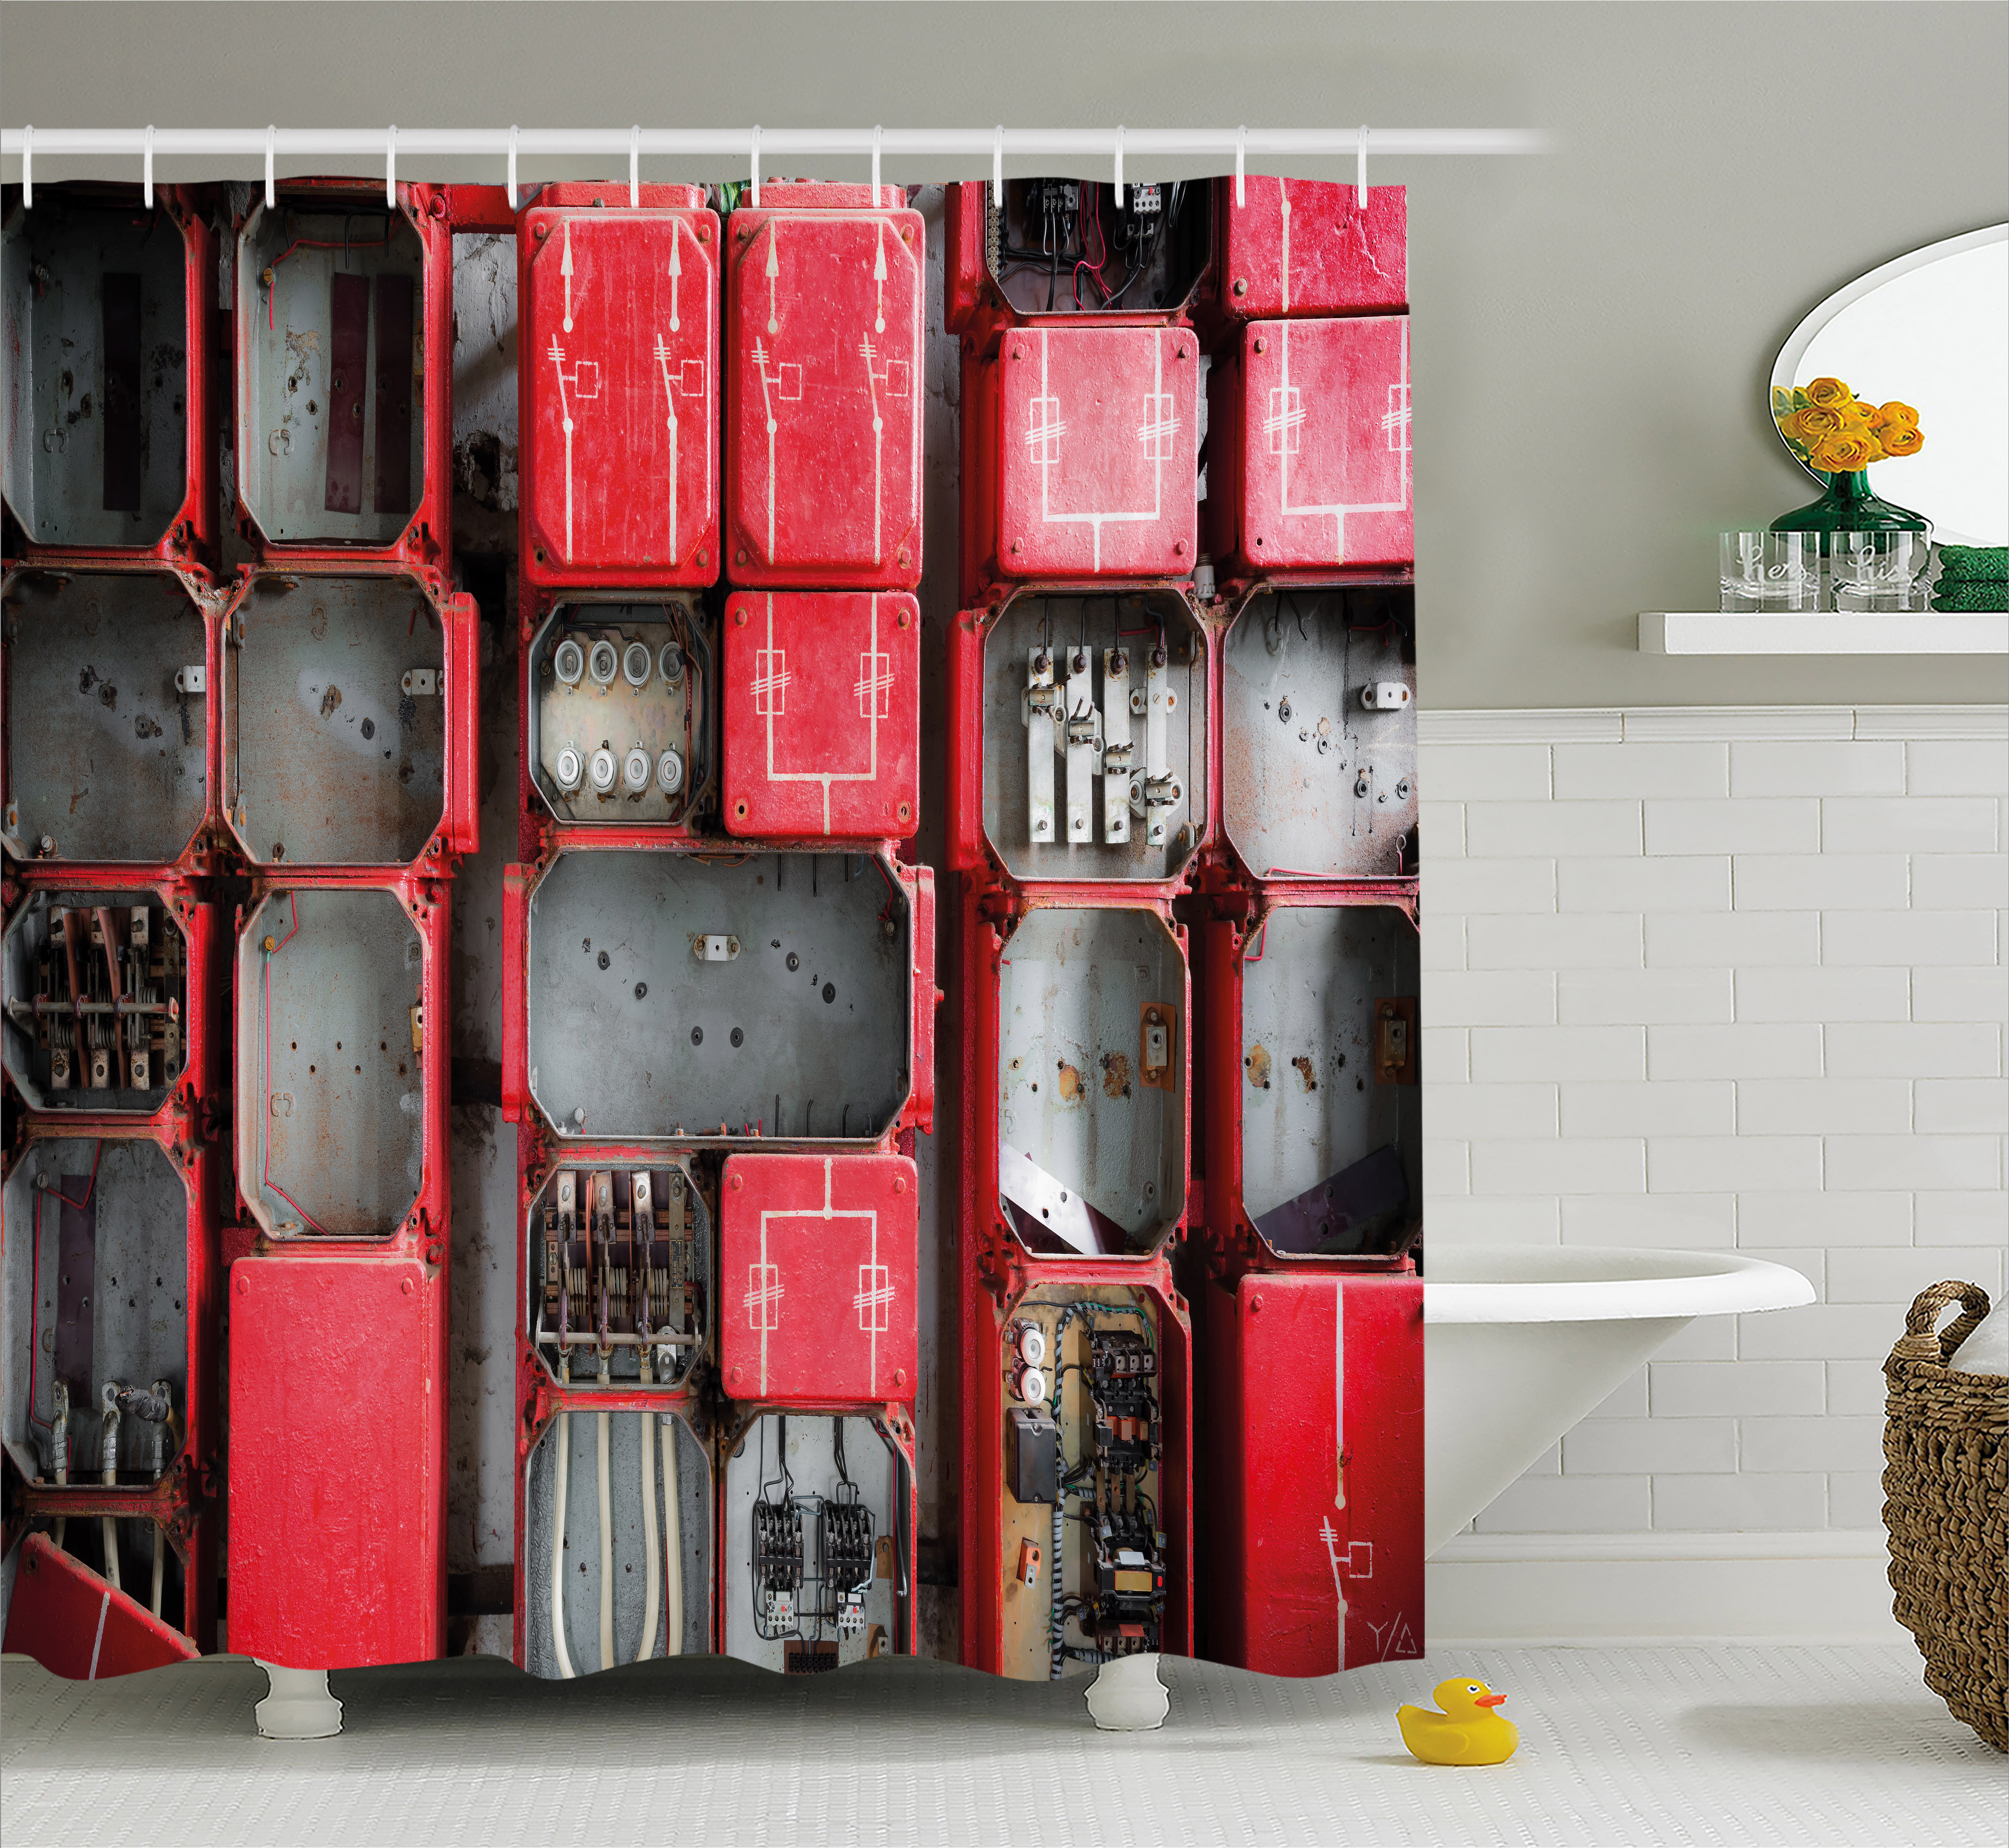 Industrial Decor Shower Curtain, Fuse Cabinet Close Up Industrial Type Junction Cables Box Electricity, Fabric Bathroom Set with Hooks, 69W X 84L Inches Extra Long, Red White Grey, by Ambesonne